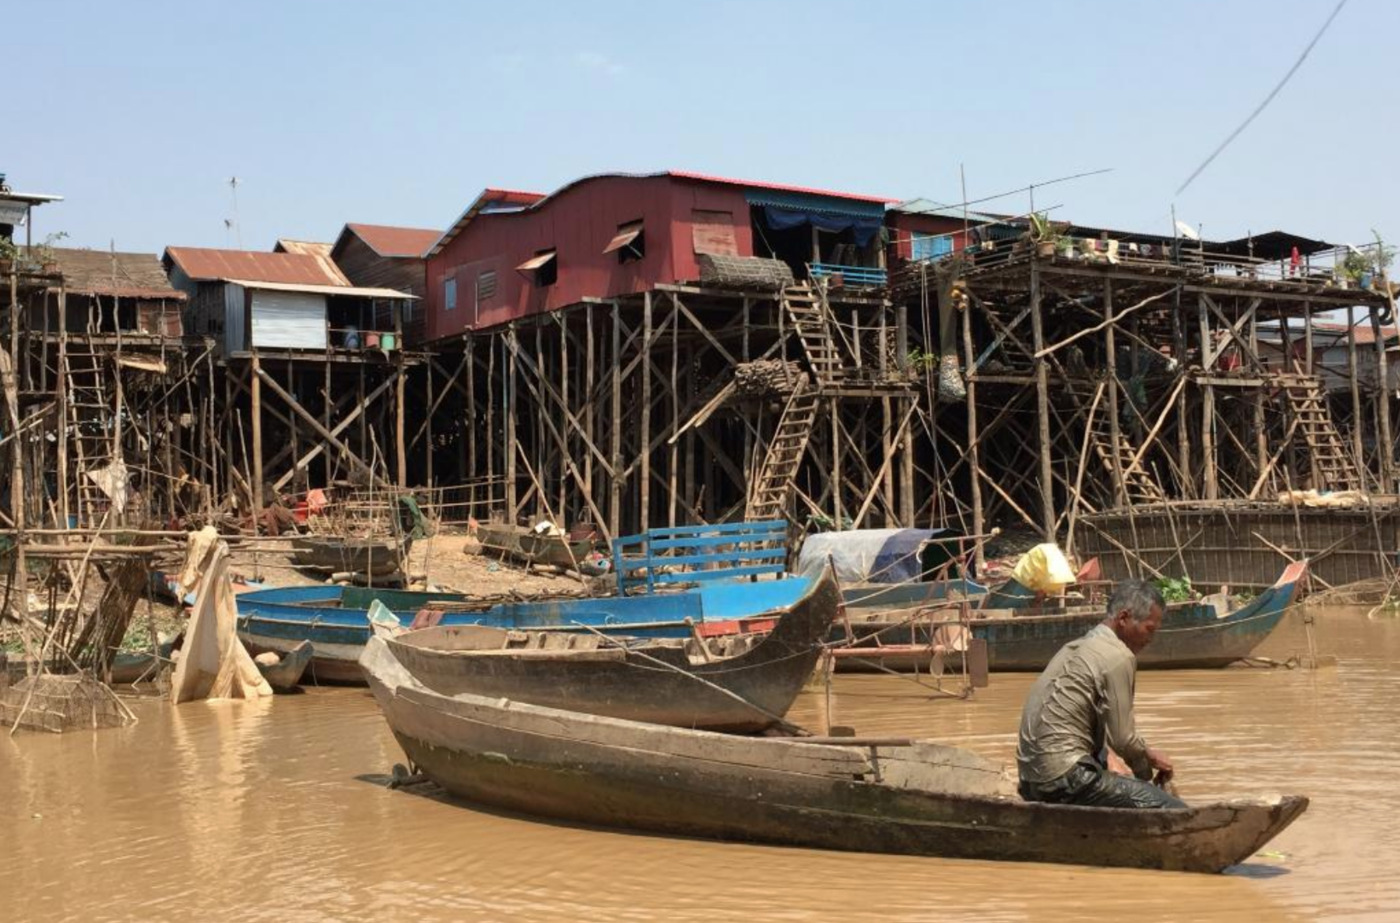 User submitted photo of Tonlé Sap Lake